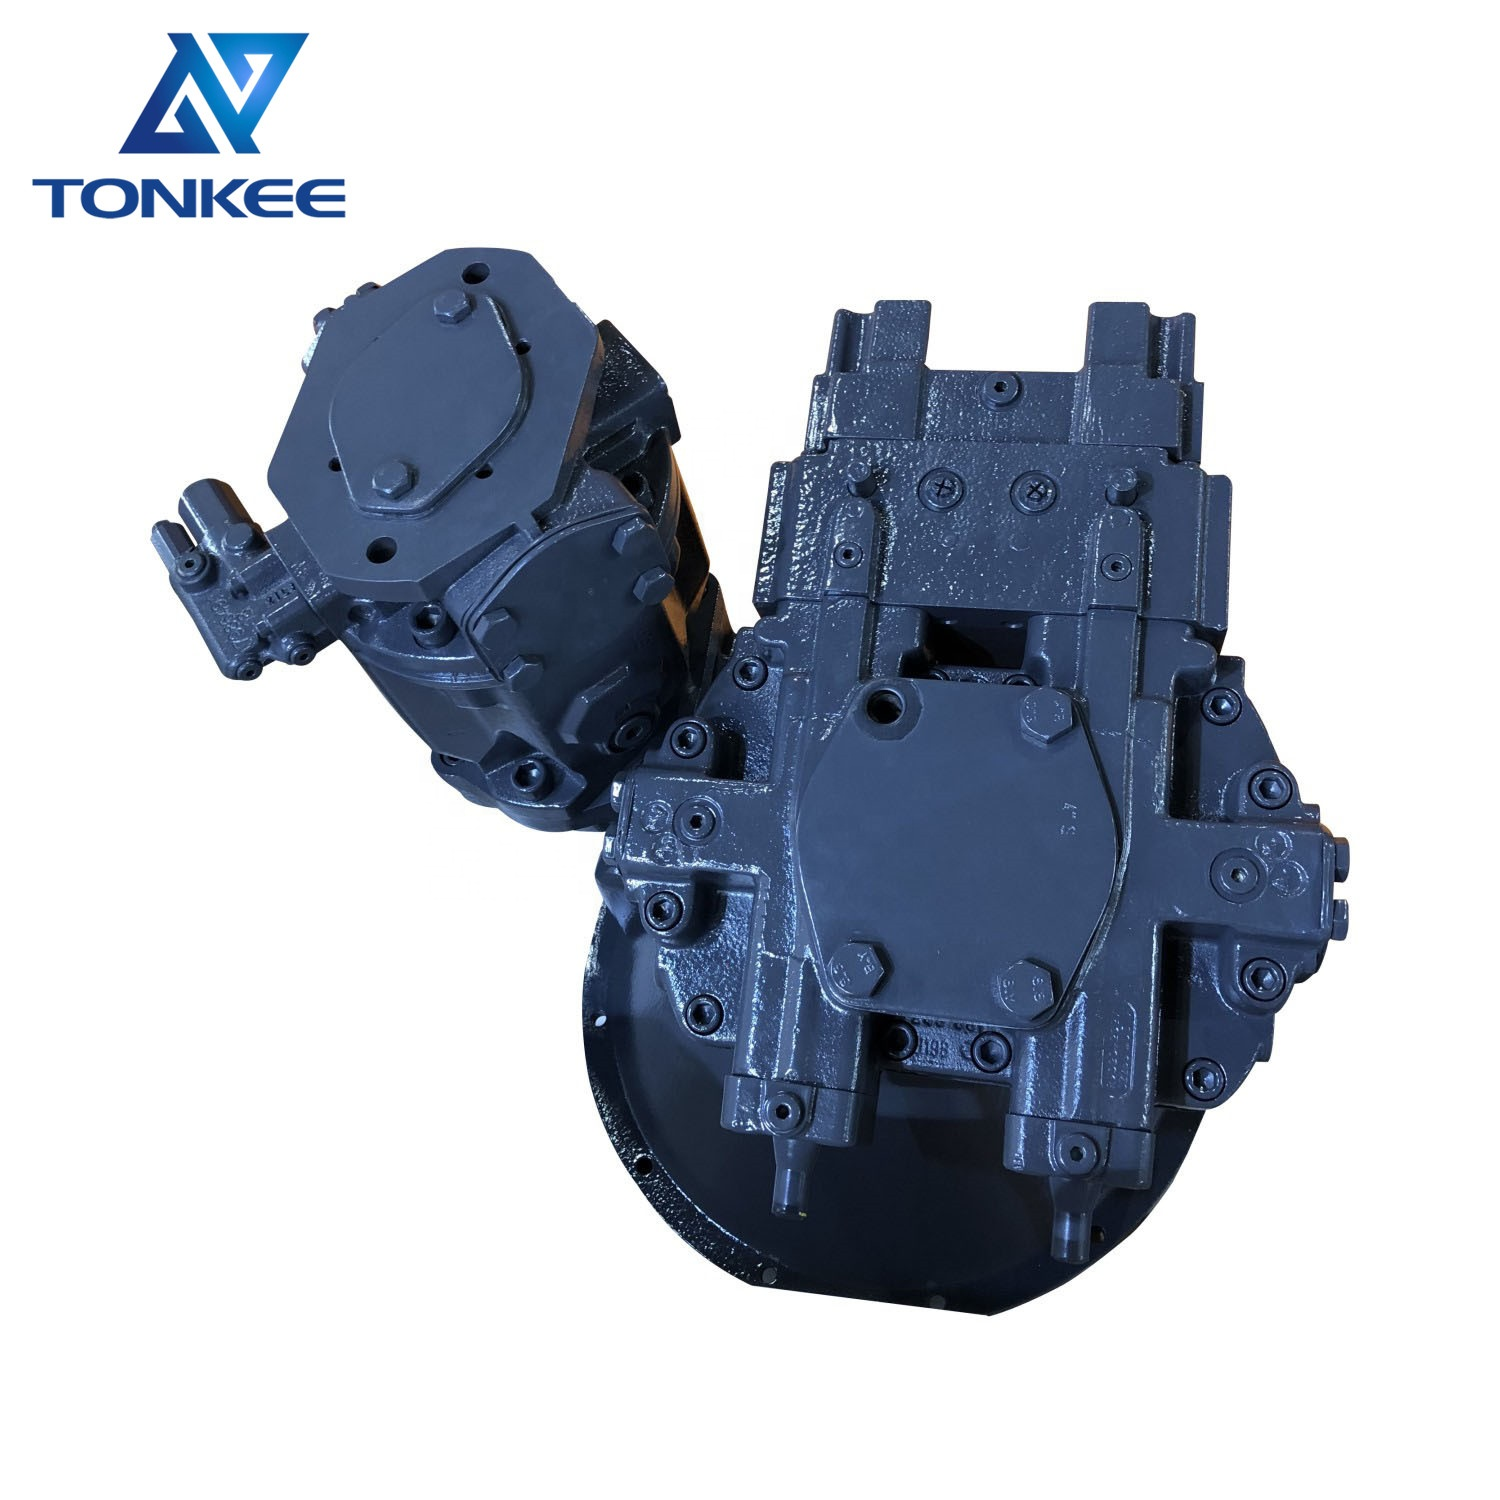 A8VO140LA1KS63R1+A10VO71DFR31R A8VO140+A10VO71 hydraulic main pump assy XR220D XR280D XR320D XR360 hydraulic piston pump assembly suitable for XCMG (2).jpg